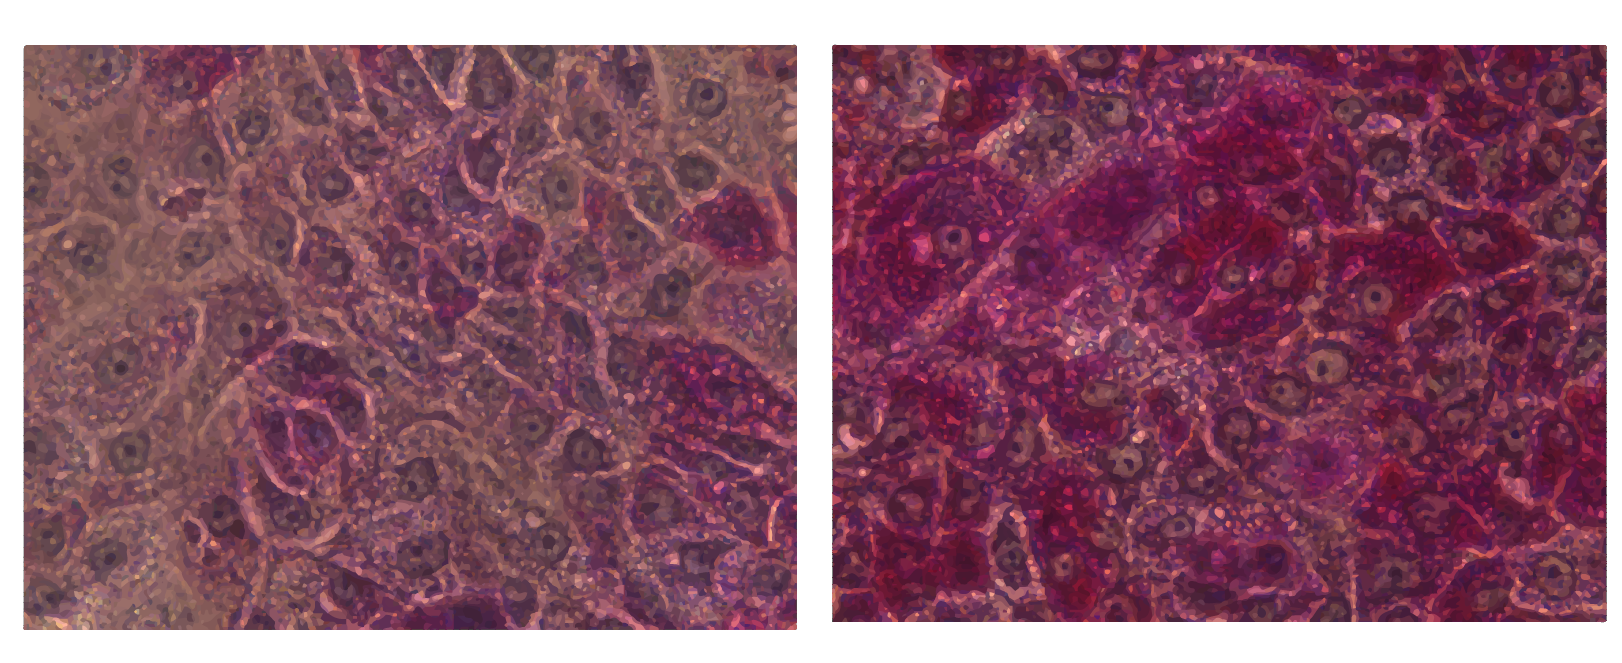 DefiniGEN PAS Staining GSD1a disease modelled hepatocytes